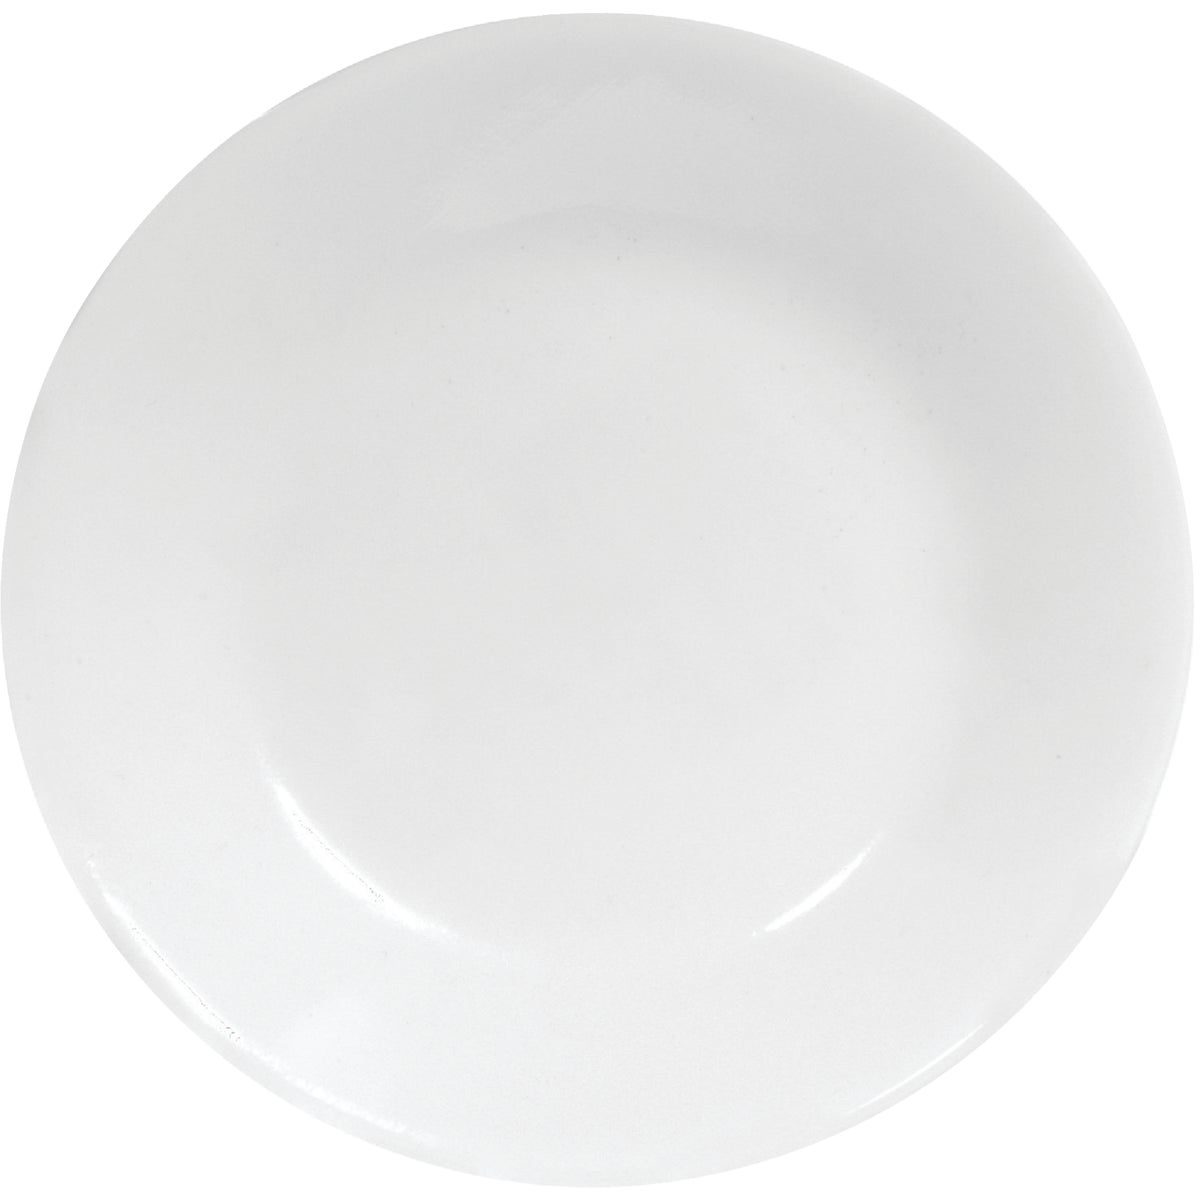 SMALL BREAD/BUTTER PLATE - 6003887 by World Kitchen